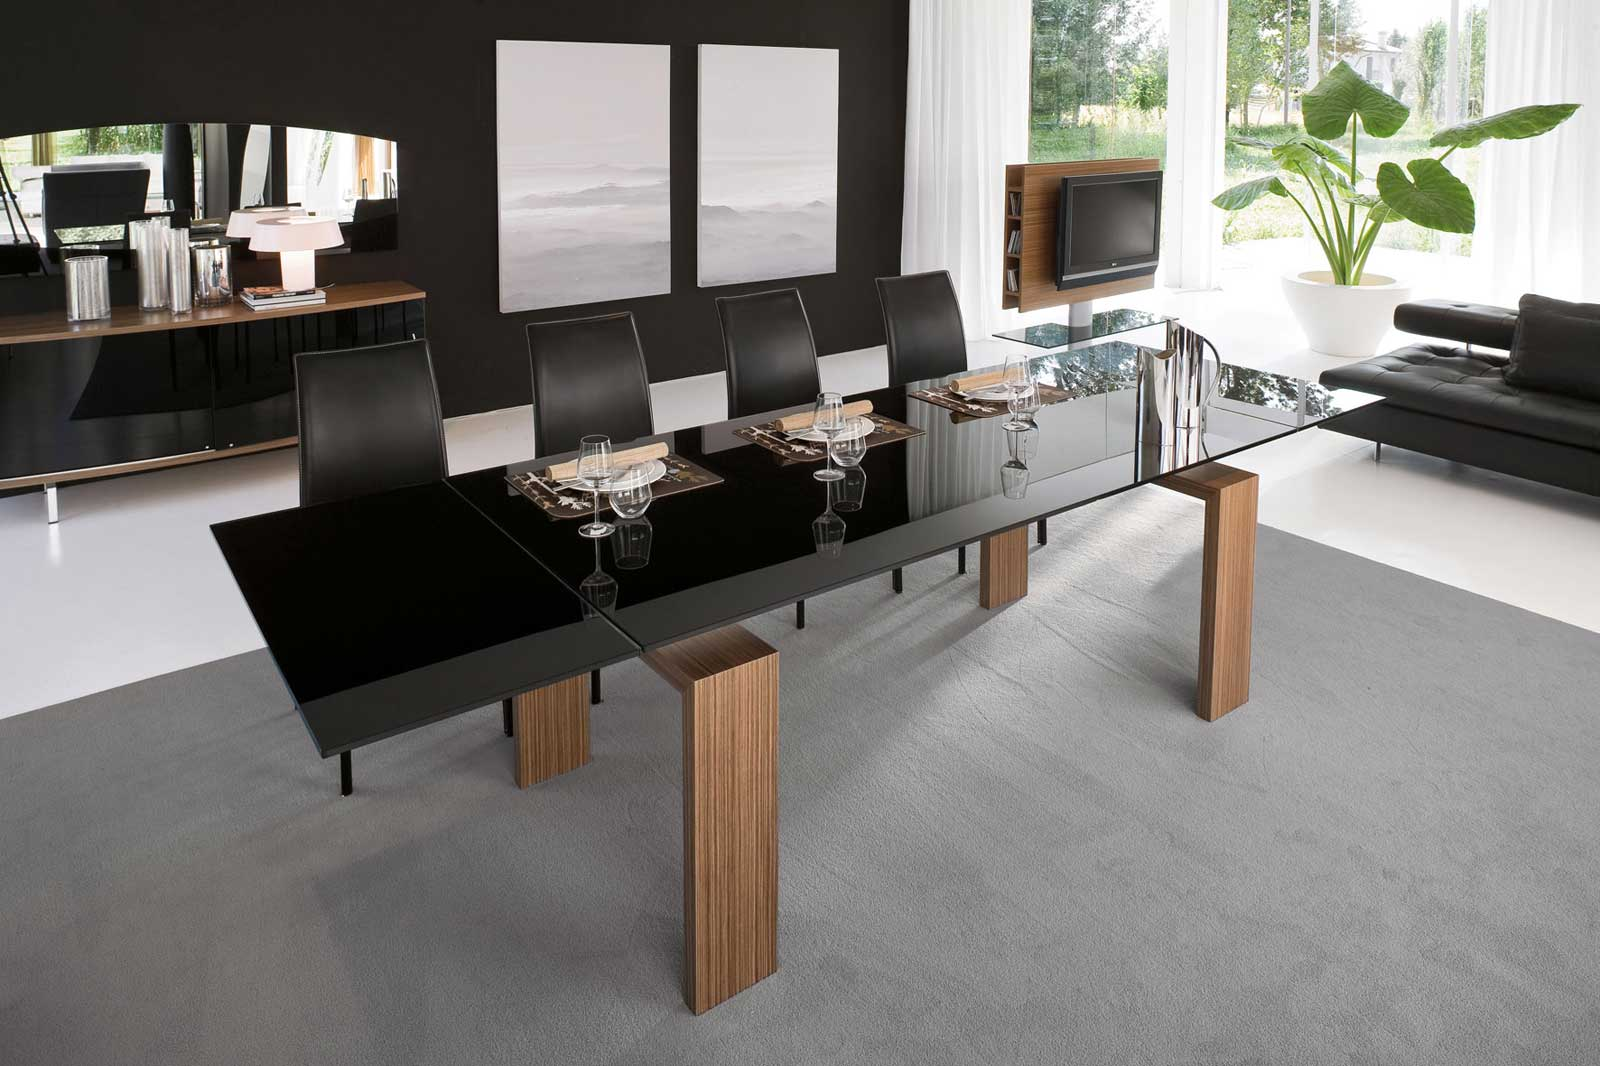 Stylish Contemporary Dining Table Ideas Showing Simple Designs  Ideas 4 Homes